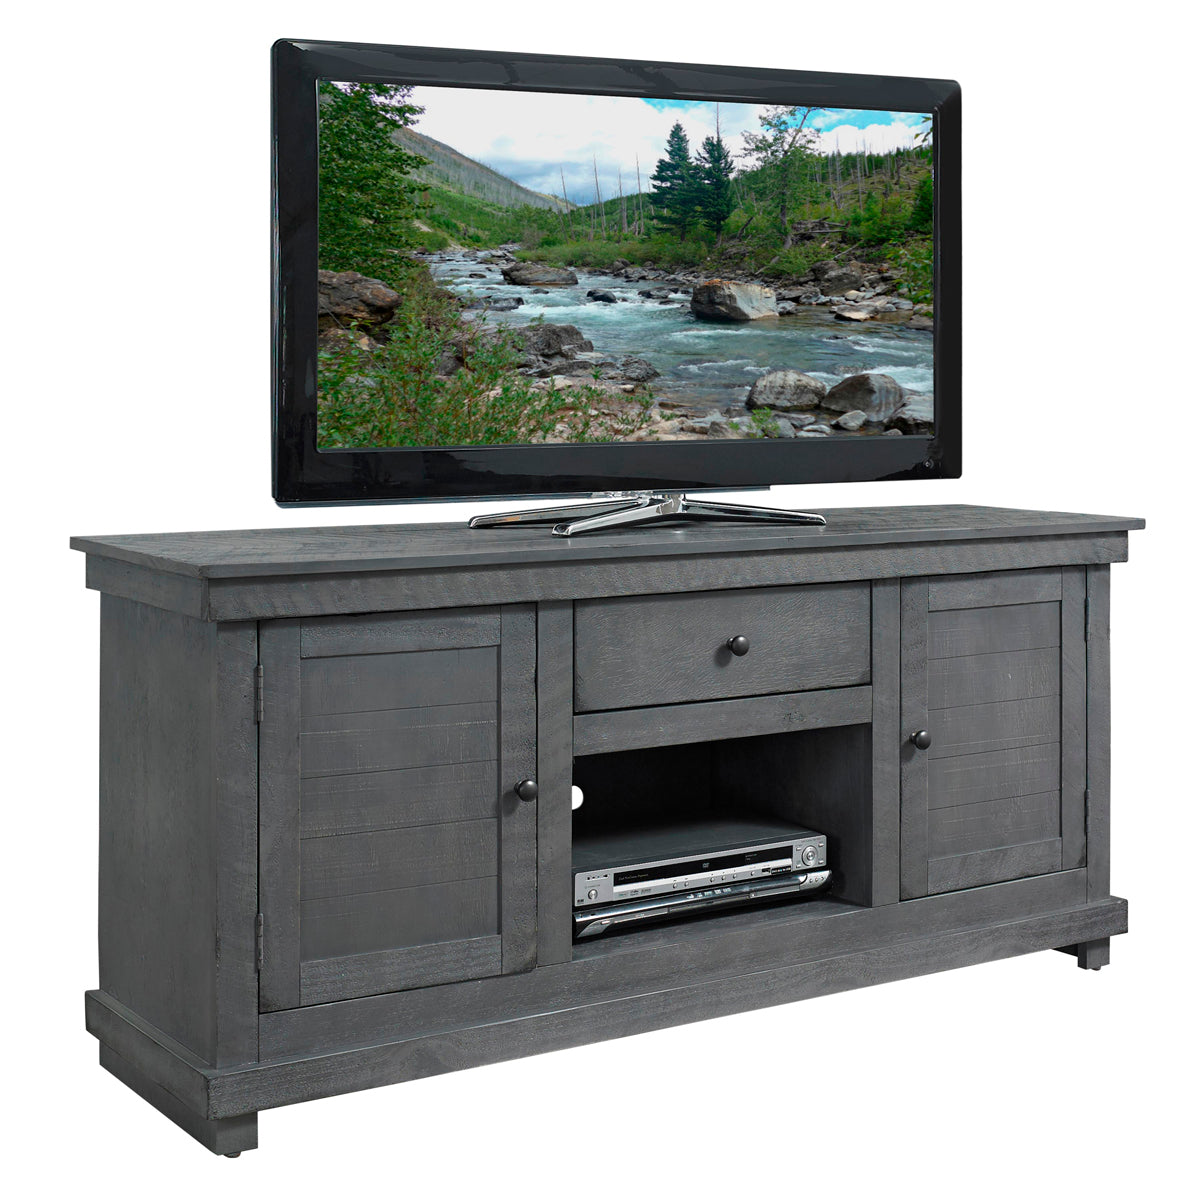 Villa Horizontal Entertainment Center